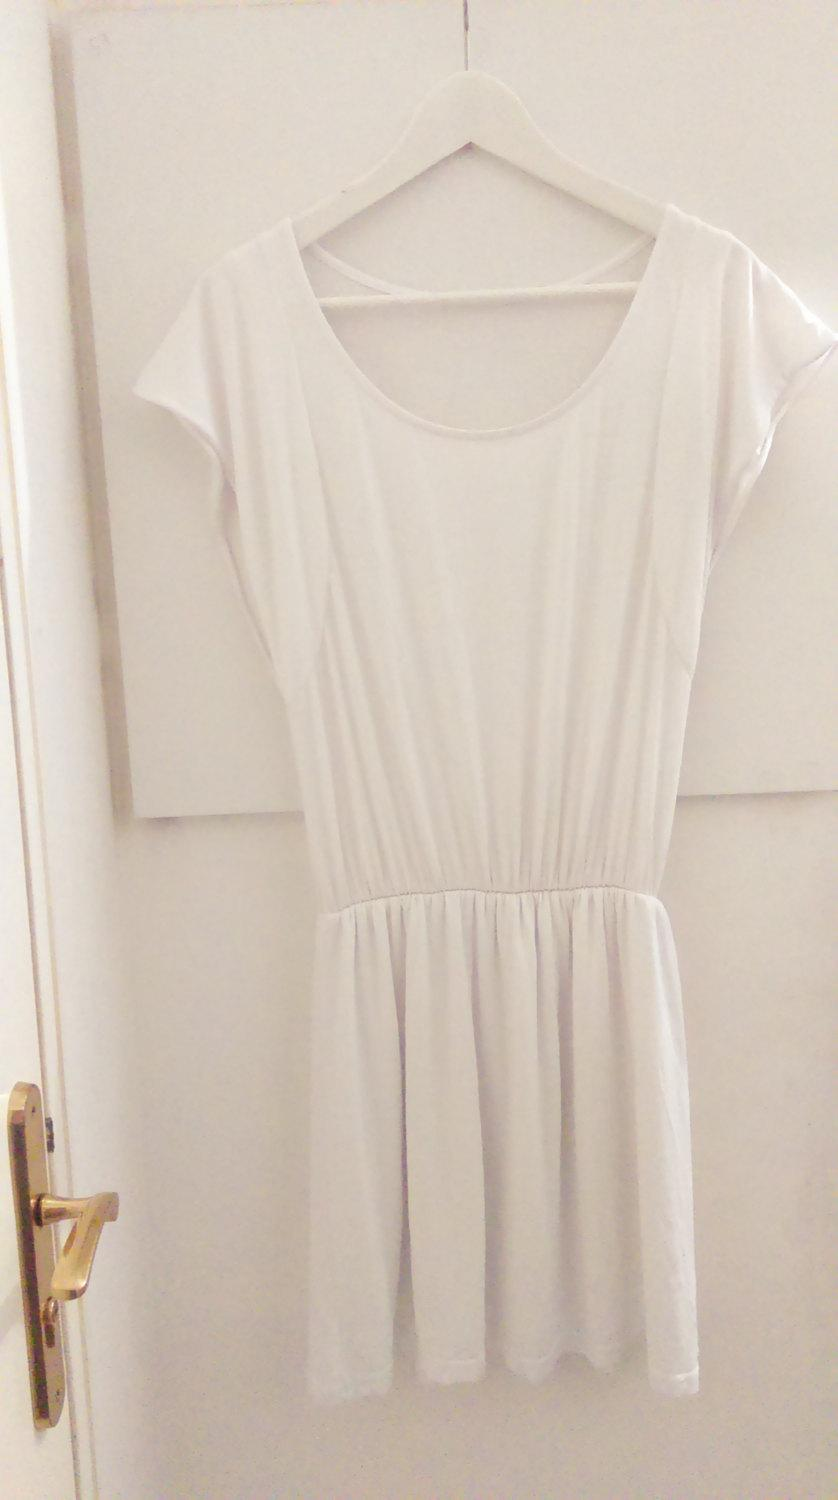 Mariage - White ceremony Dress T38/40/M